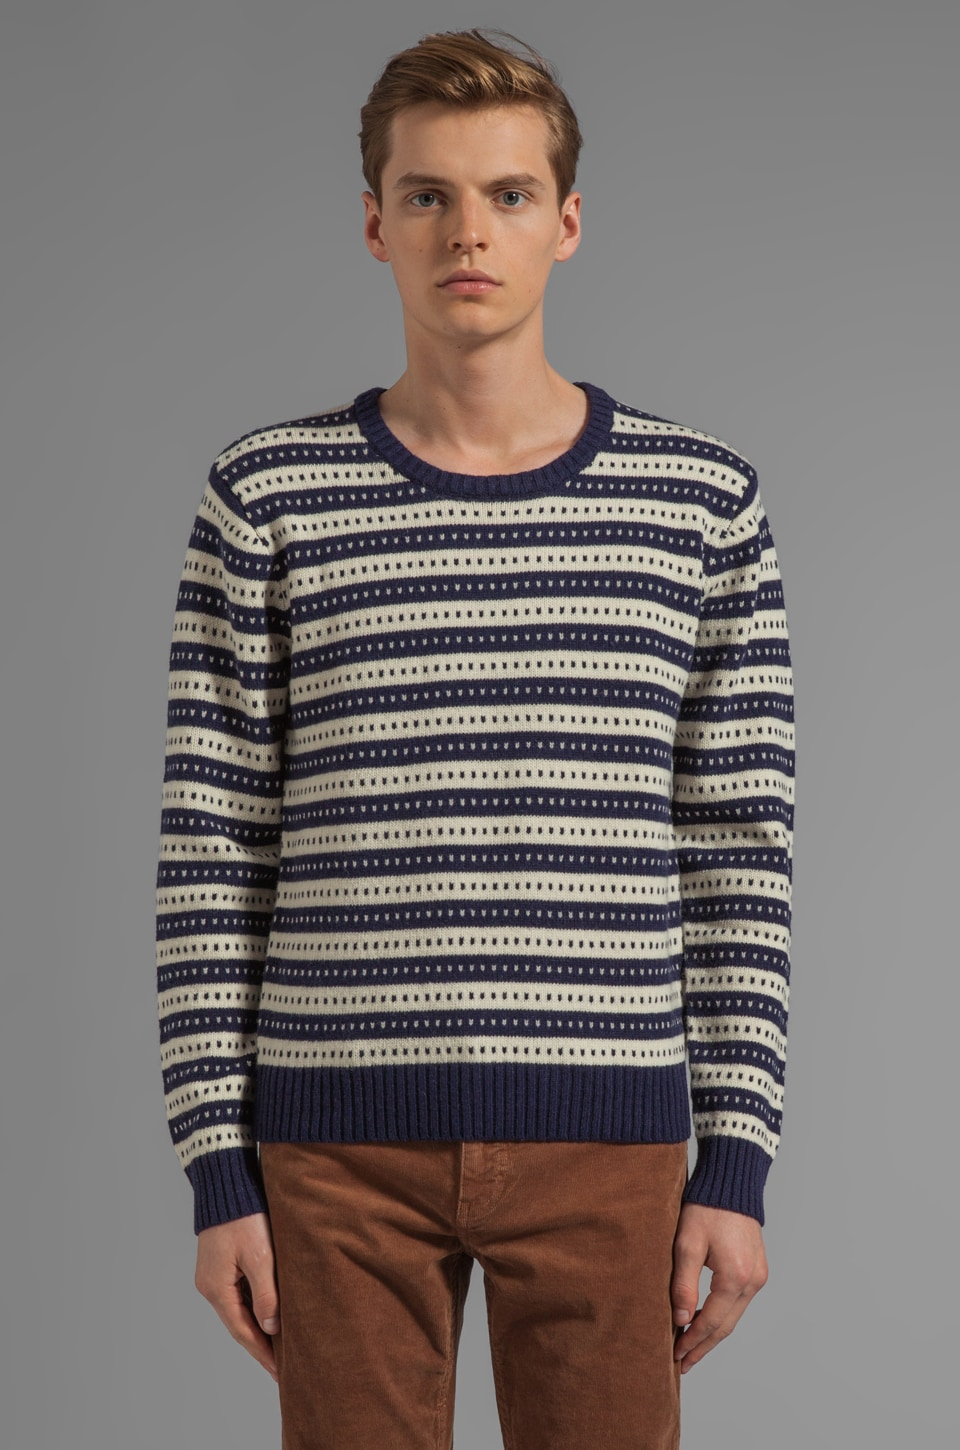 GANT Rugger Stripe Jacquard Sweater in Multi